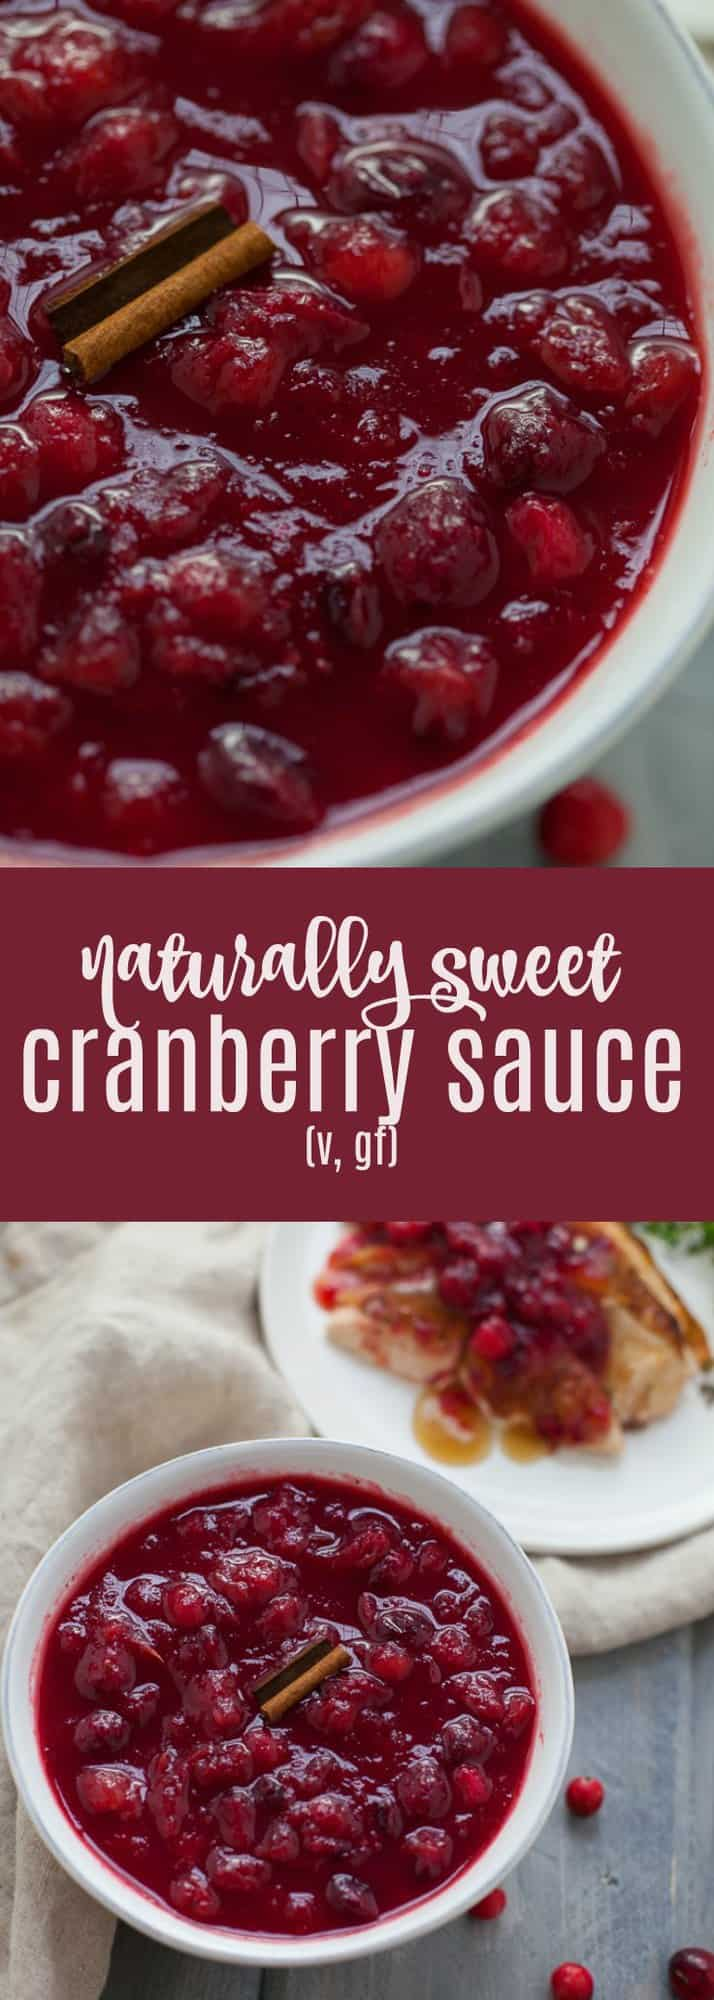 This delicious naturally sweetened cranberry sauce is sweetened using natural ingredients like applesauce and orange juice and has 2/3 less added sugar than most recipes.